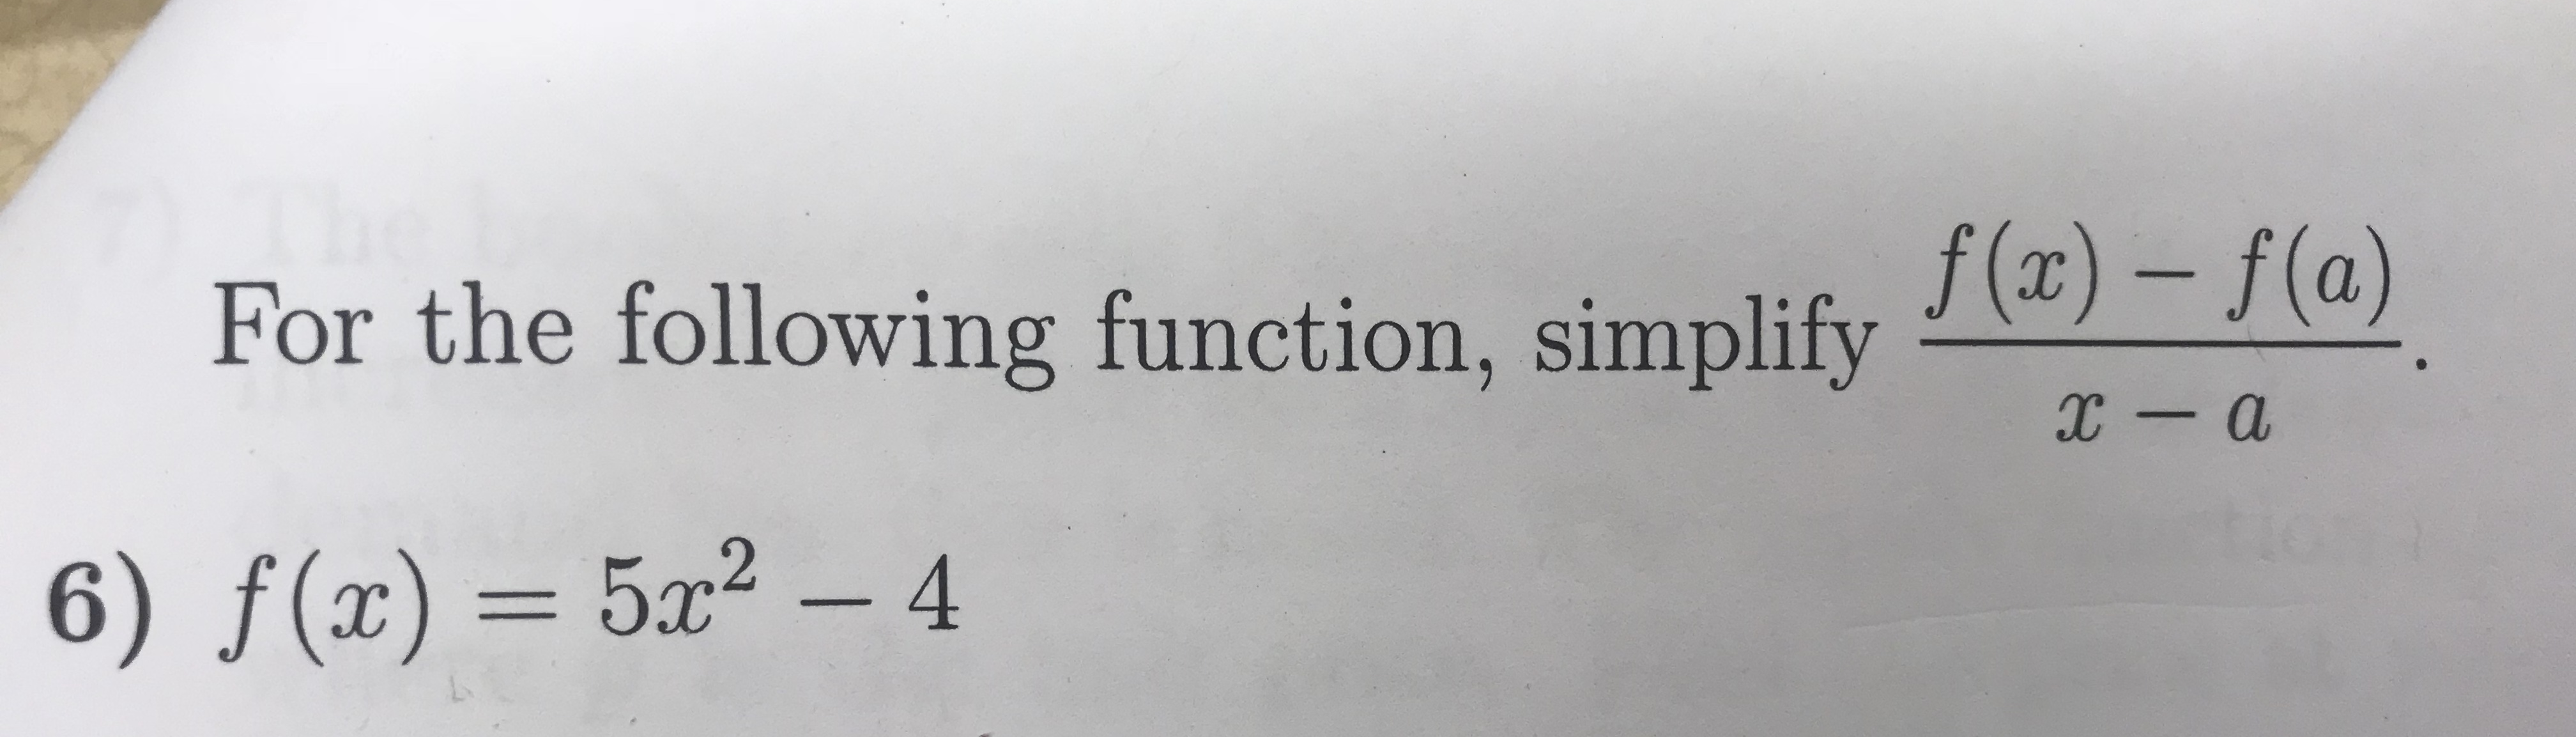 For the following function, simplifyパリ-パリ x-a 6) f(x) = 5x2-4